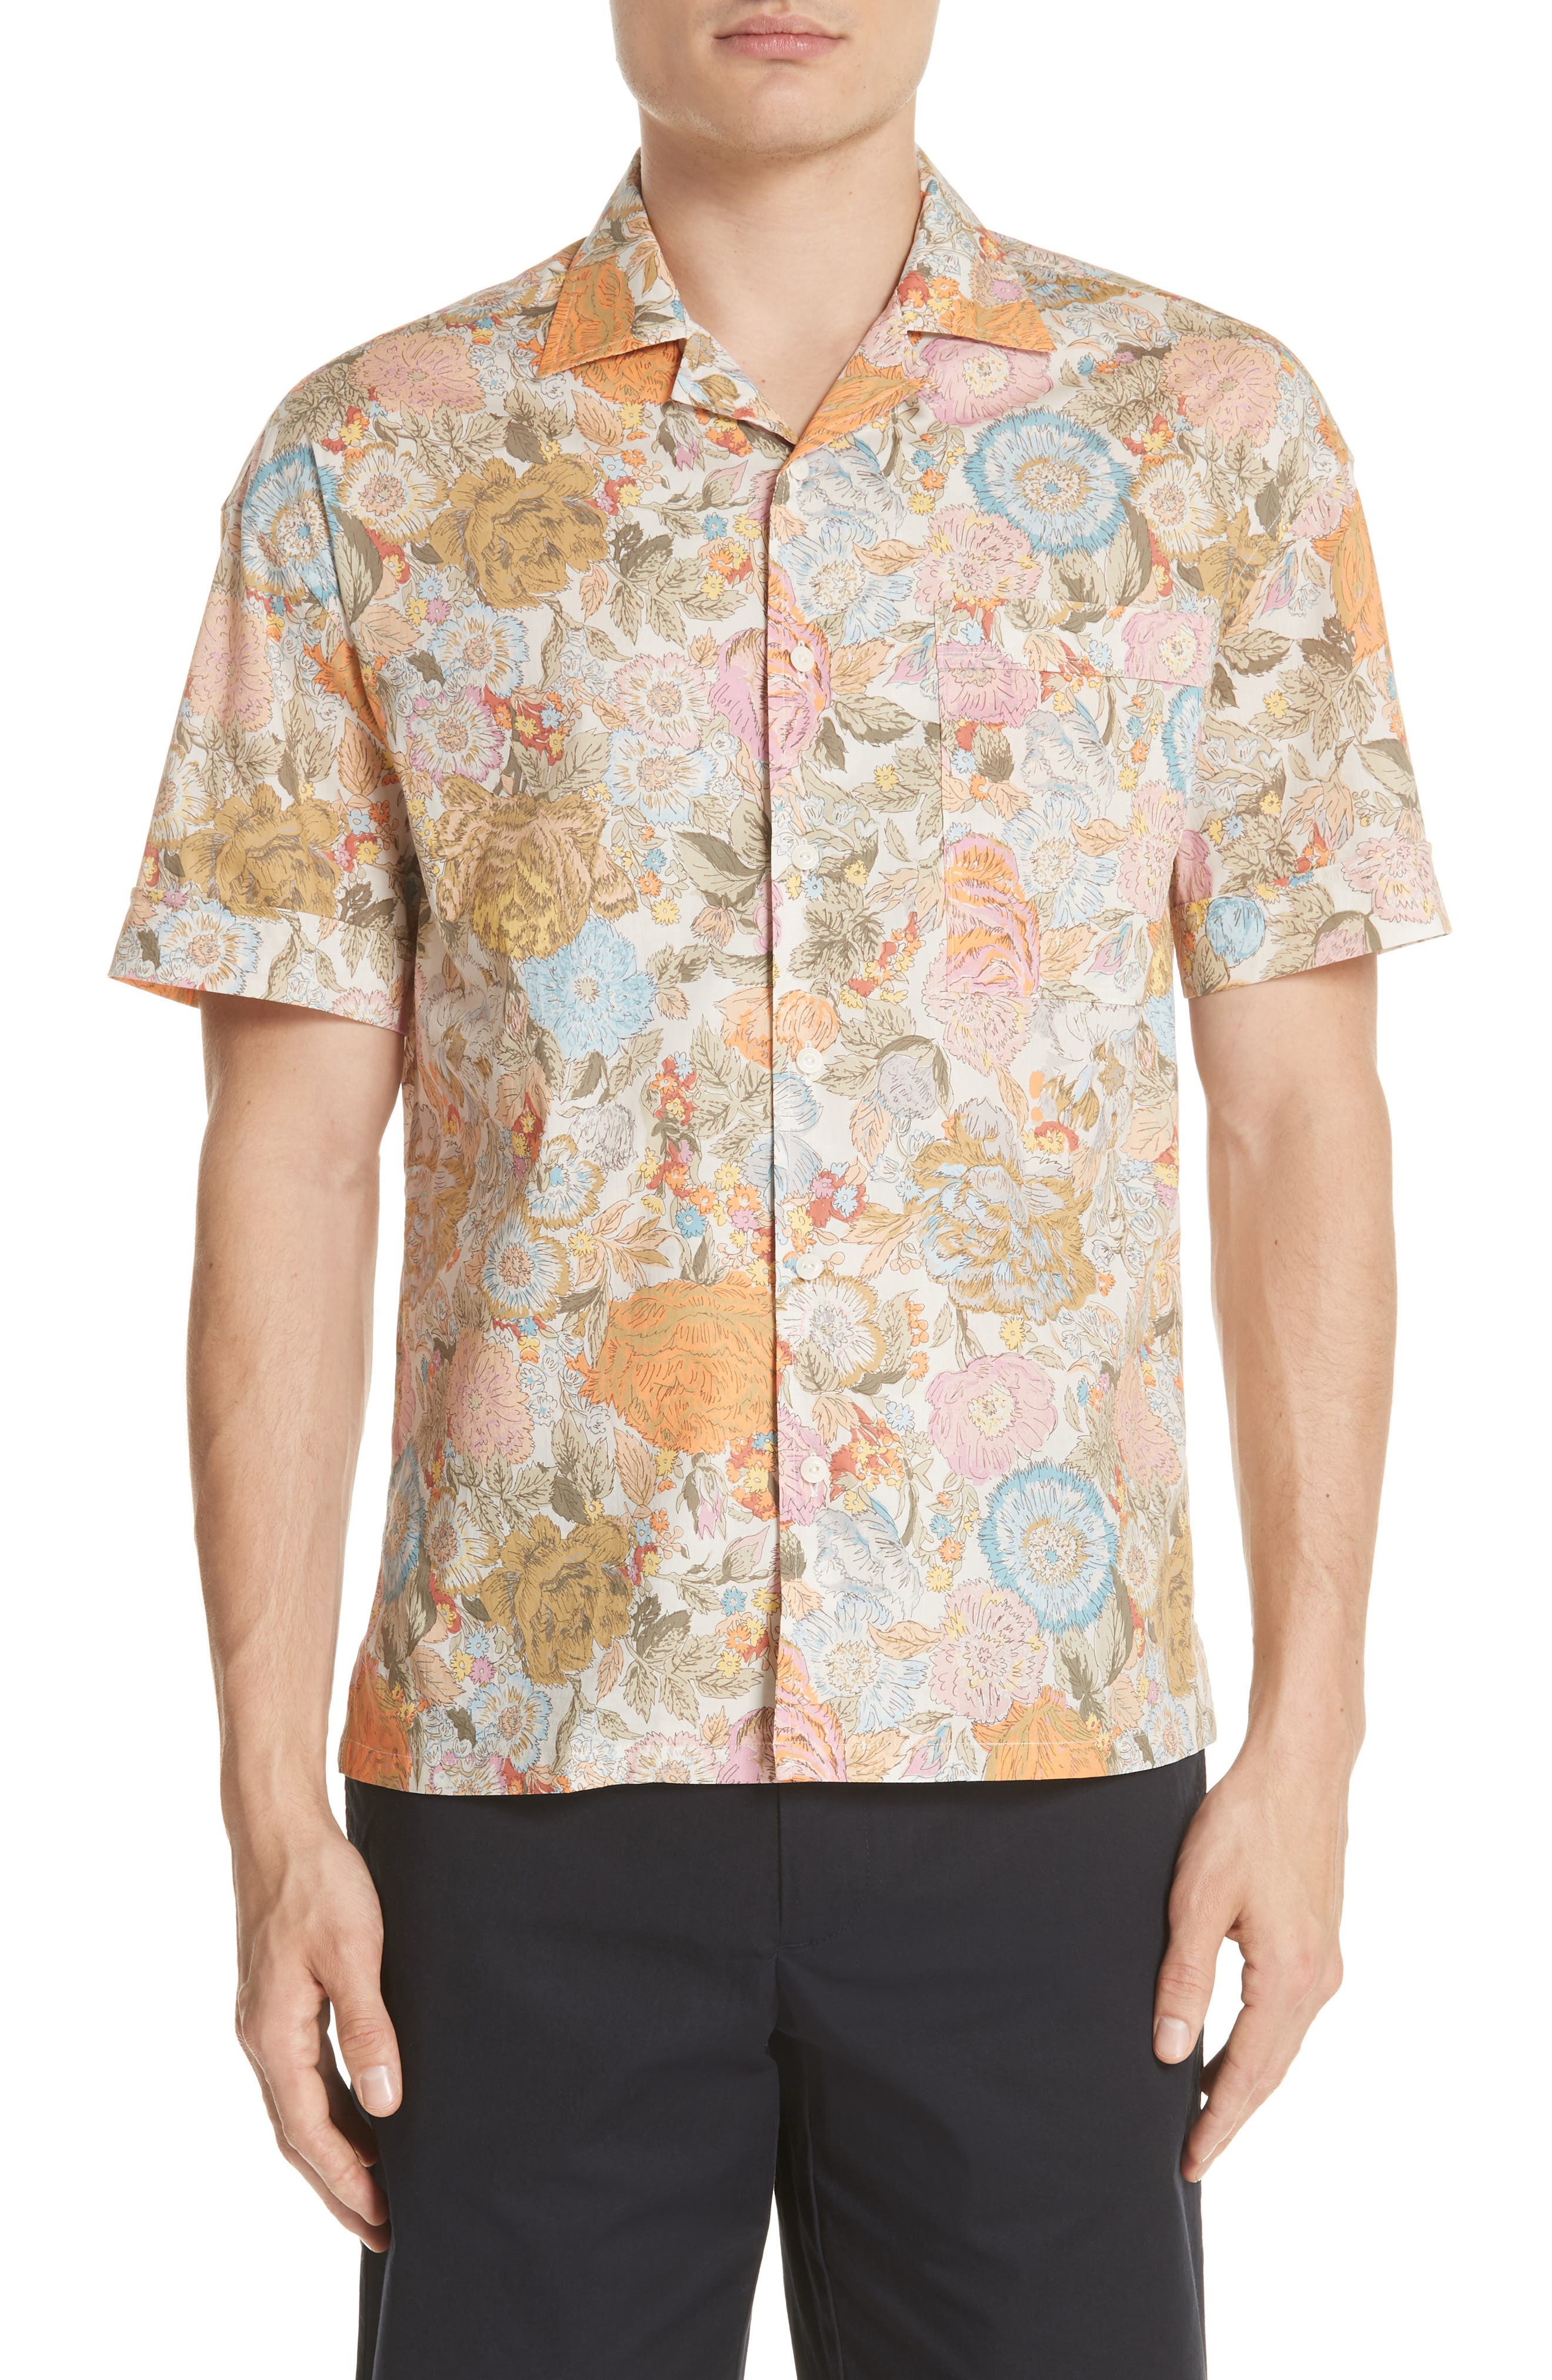 Harley Floral Print Shirt,                             Main thumbnail 1, color,                             Bright Orange